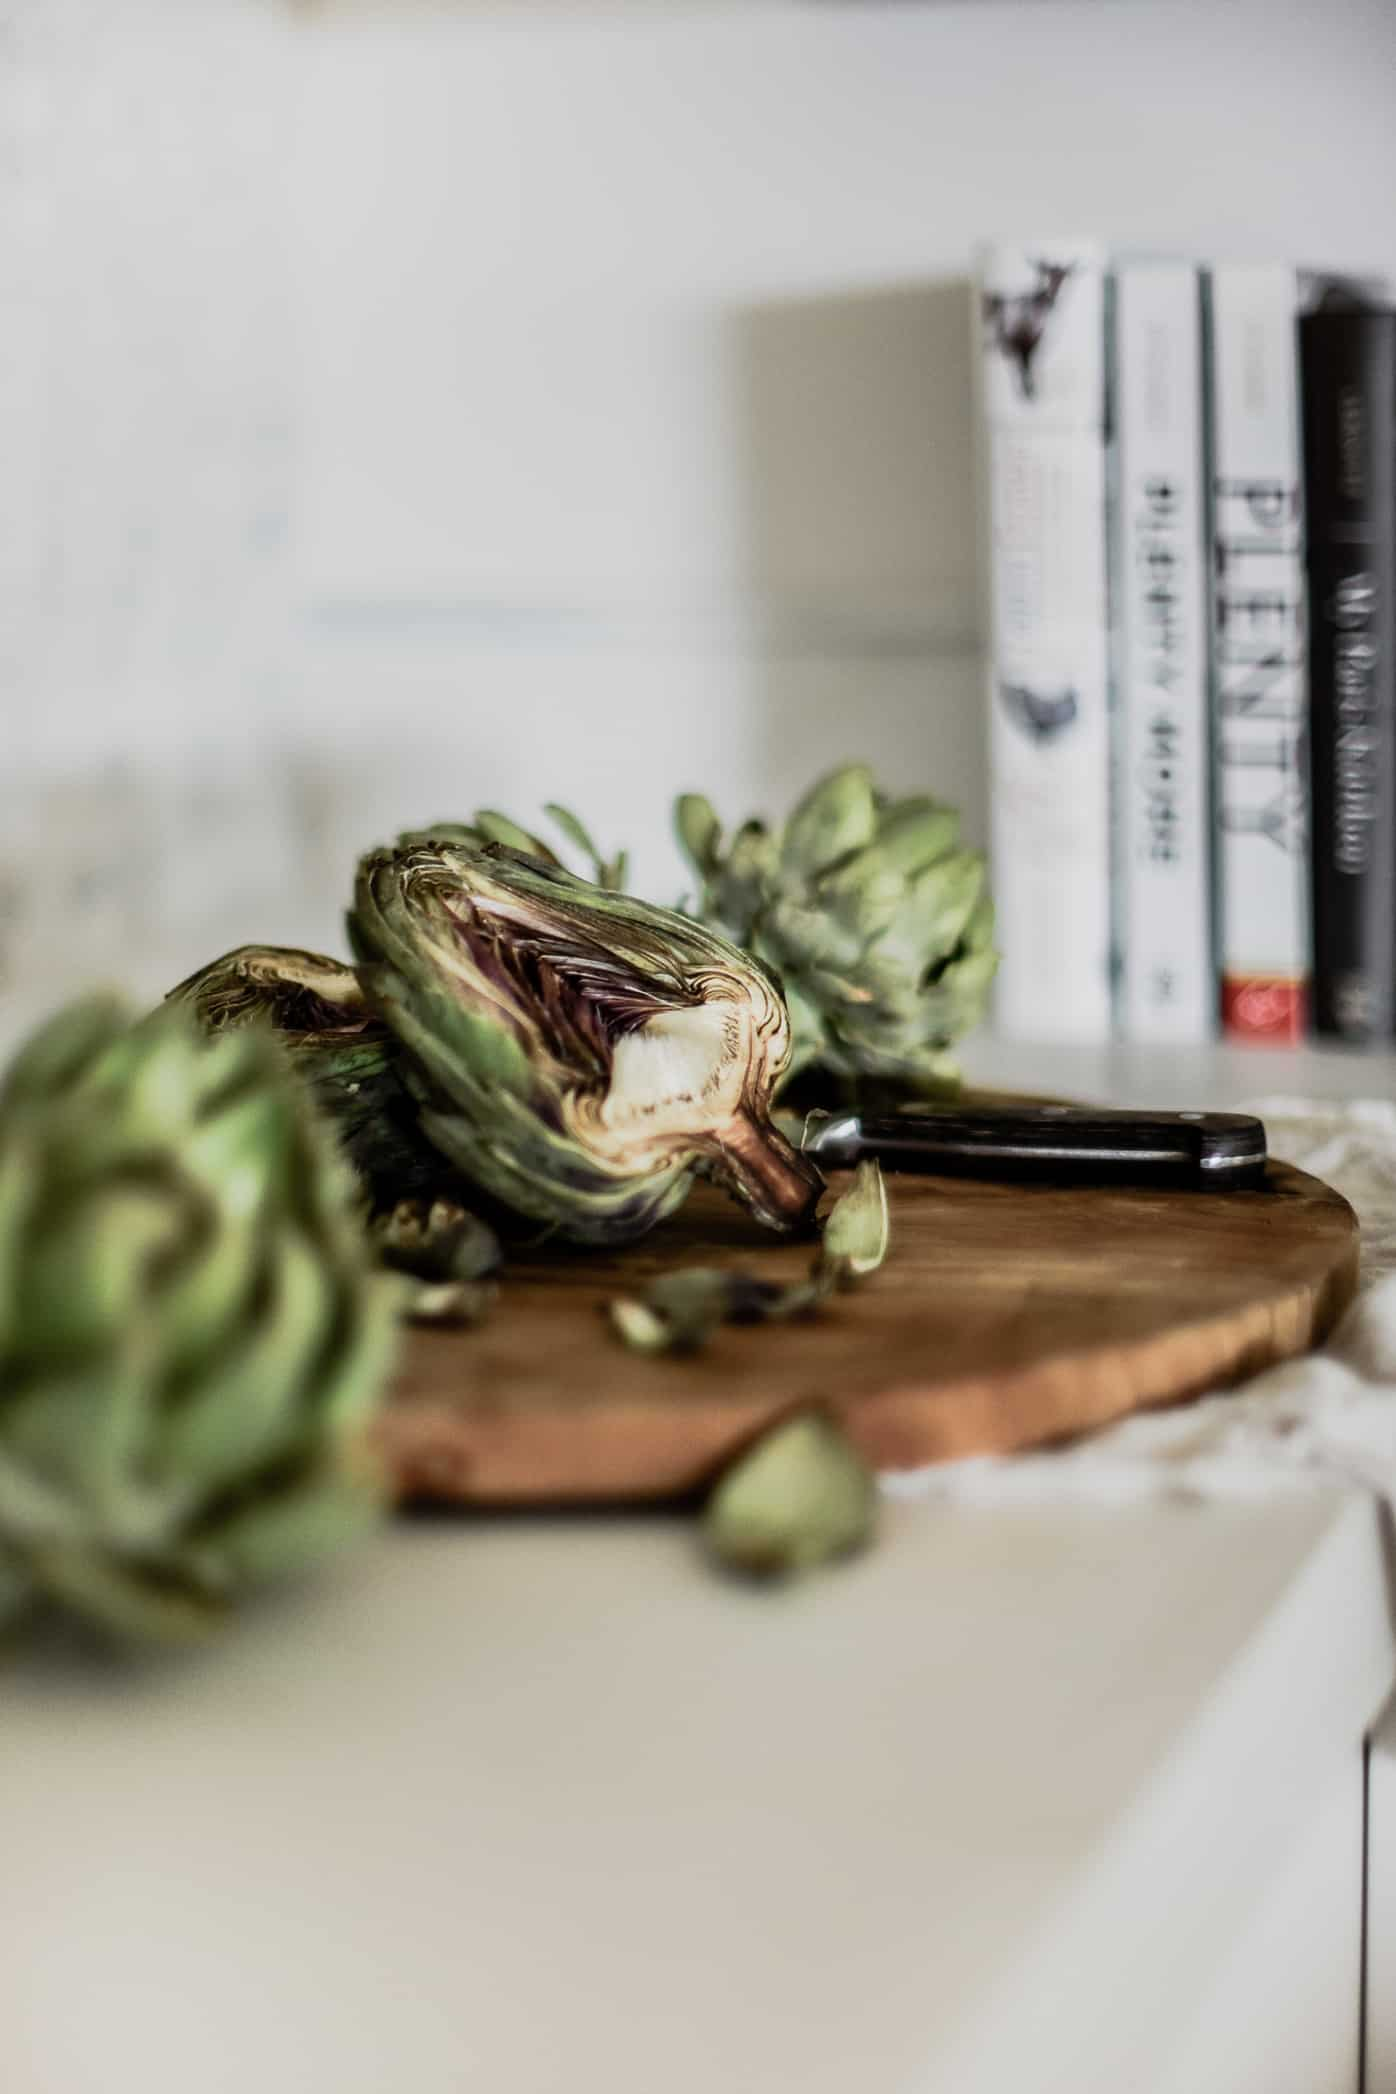 Artichokes are a hearty vegetable that can be grown in any climate, and enjoyed throughout fall! Follow this guide to learn how to grow artichokes in your garden!